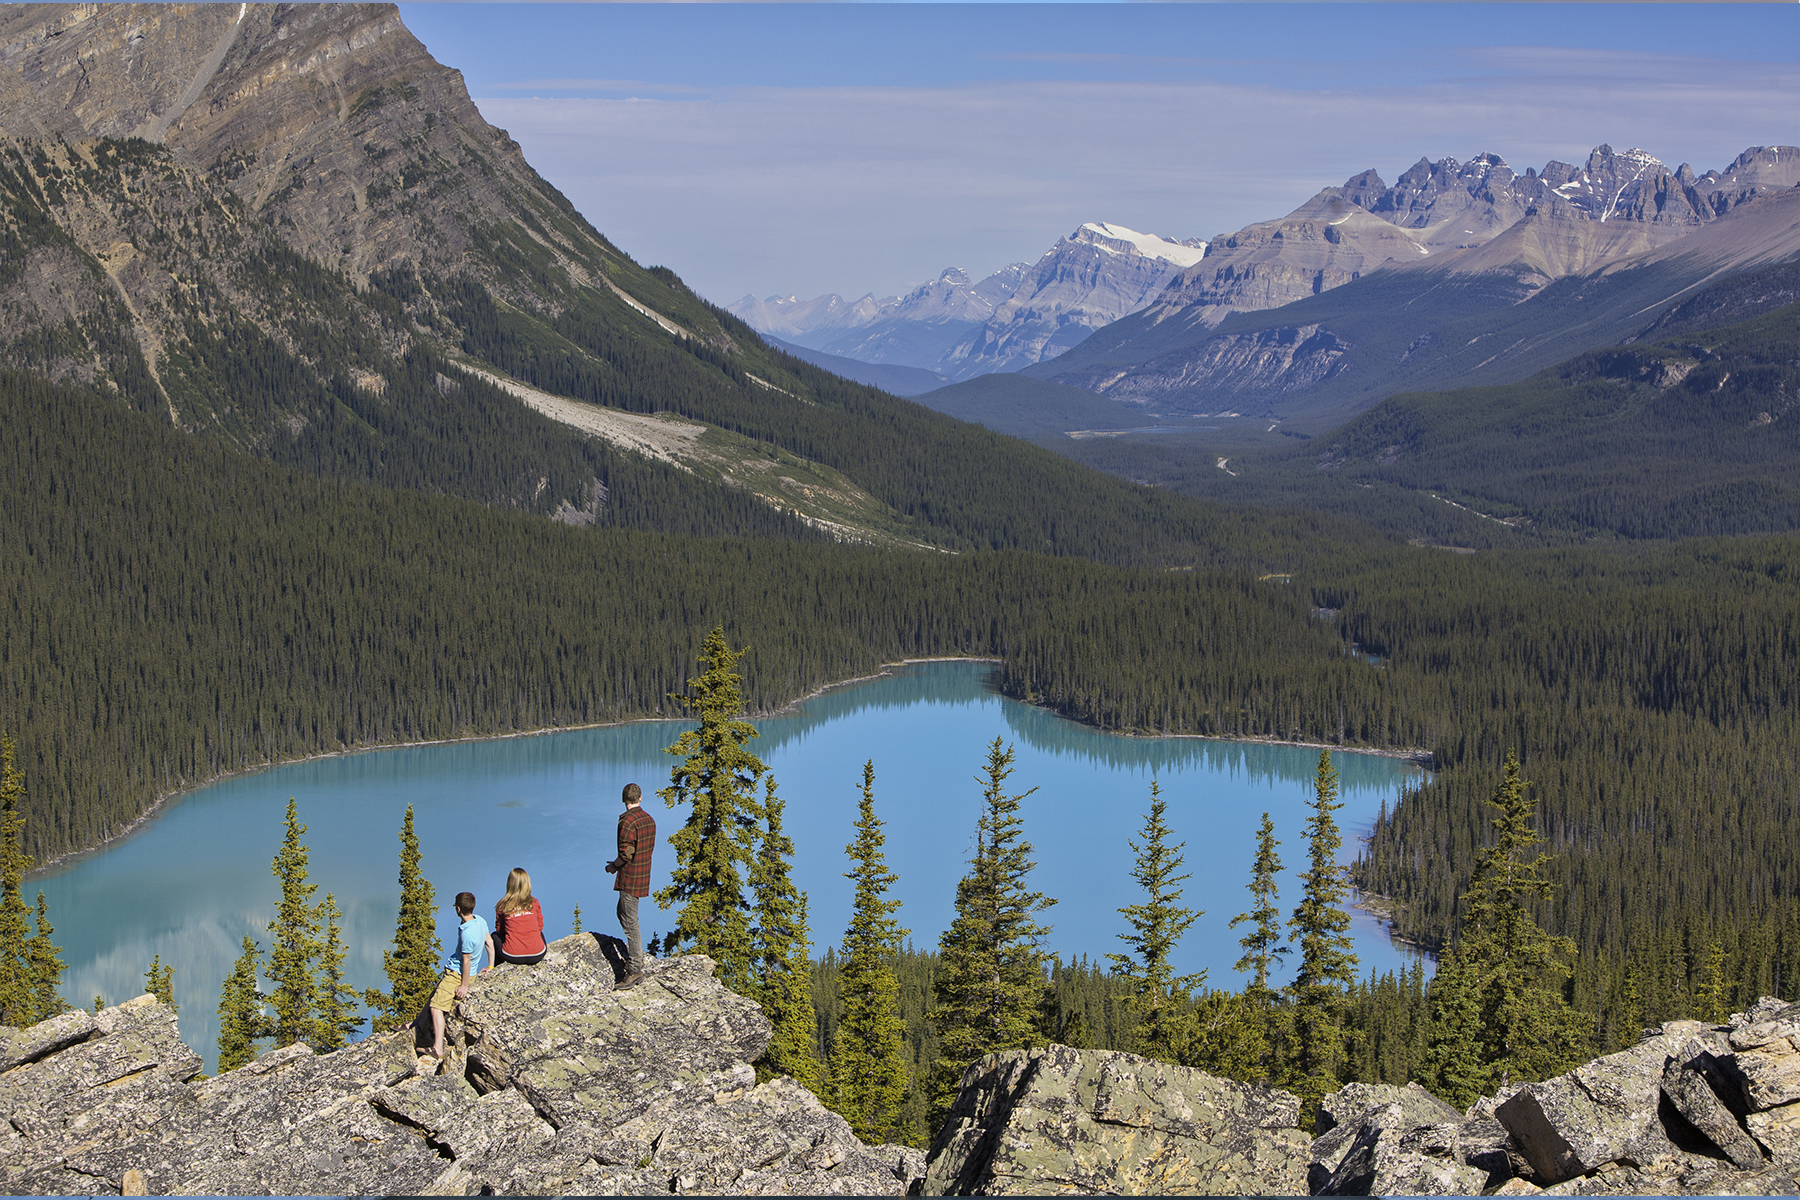 Peyto-lake-icefields-parkway-alberta-canada-que-hacer-3